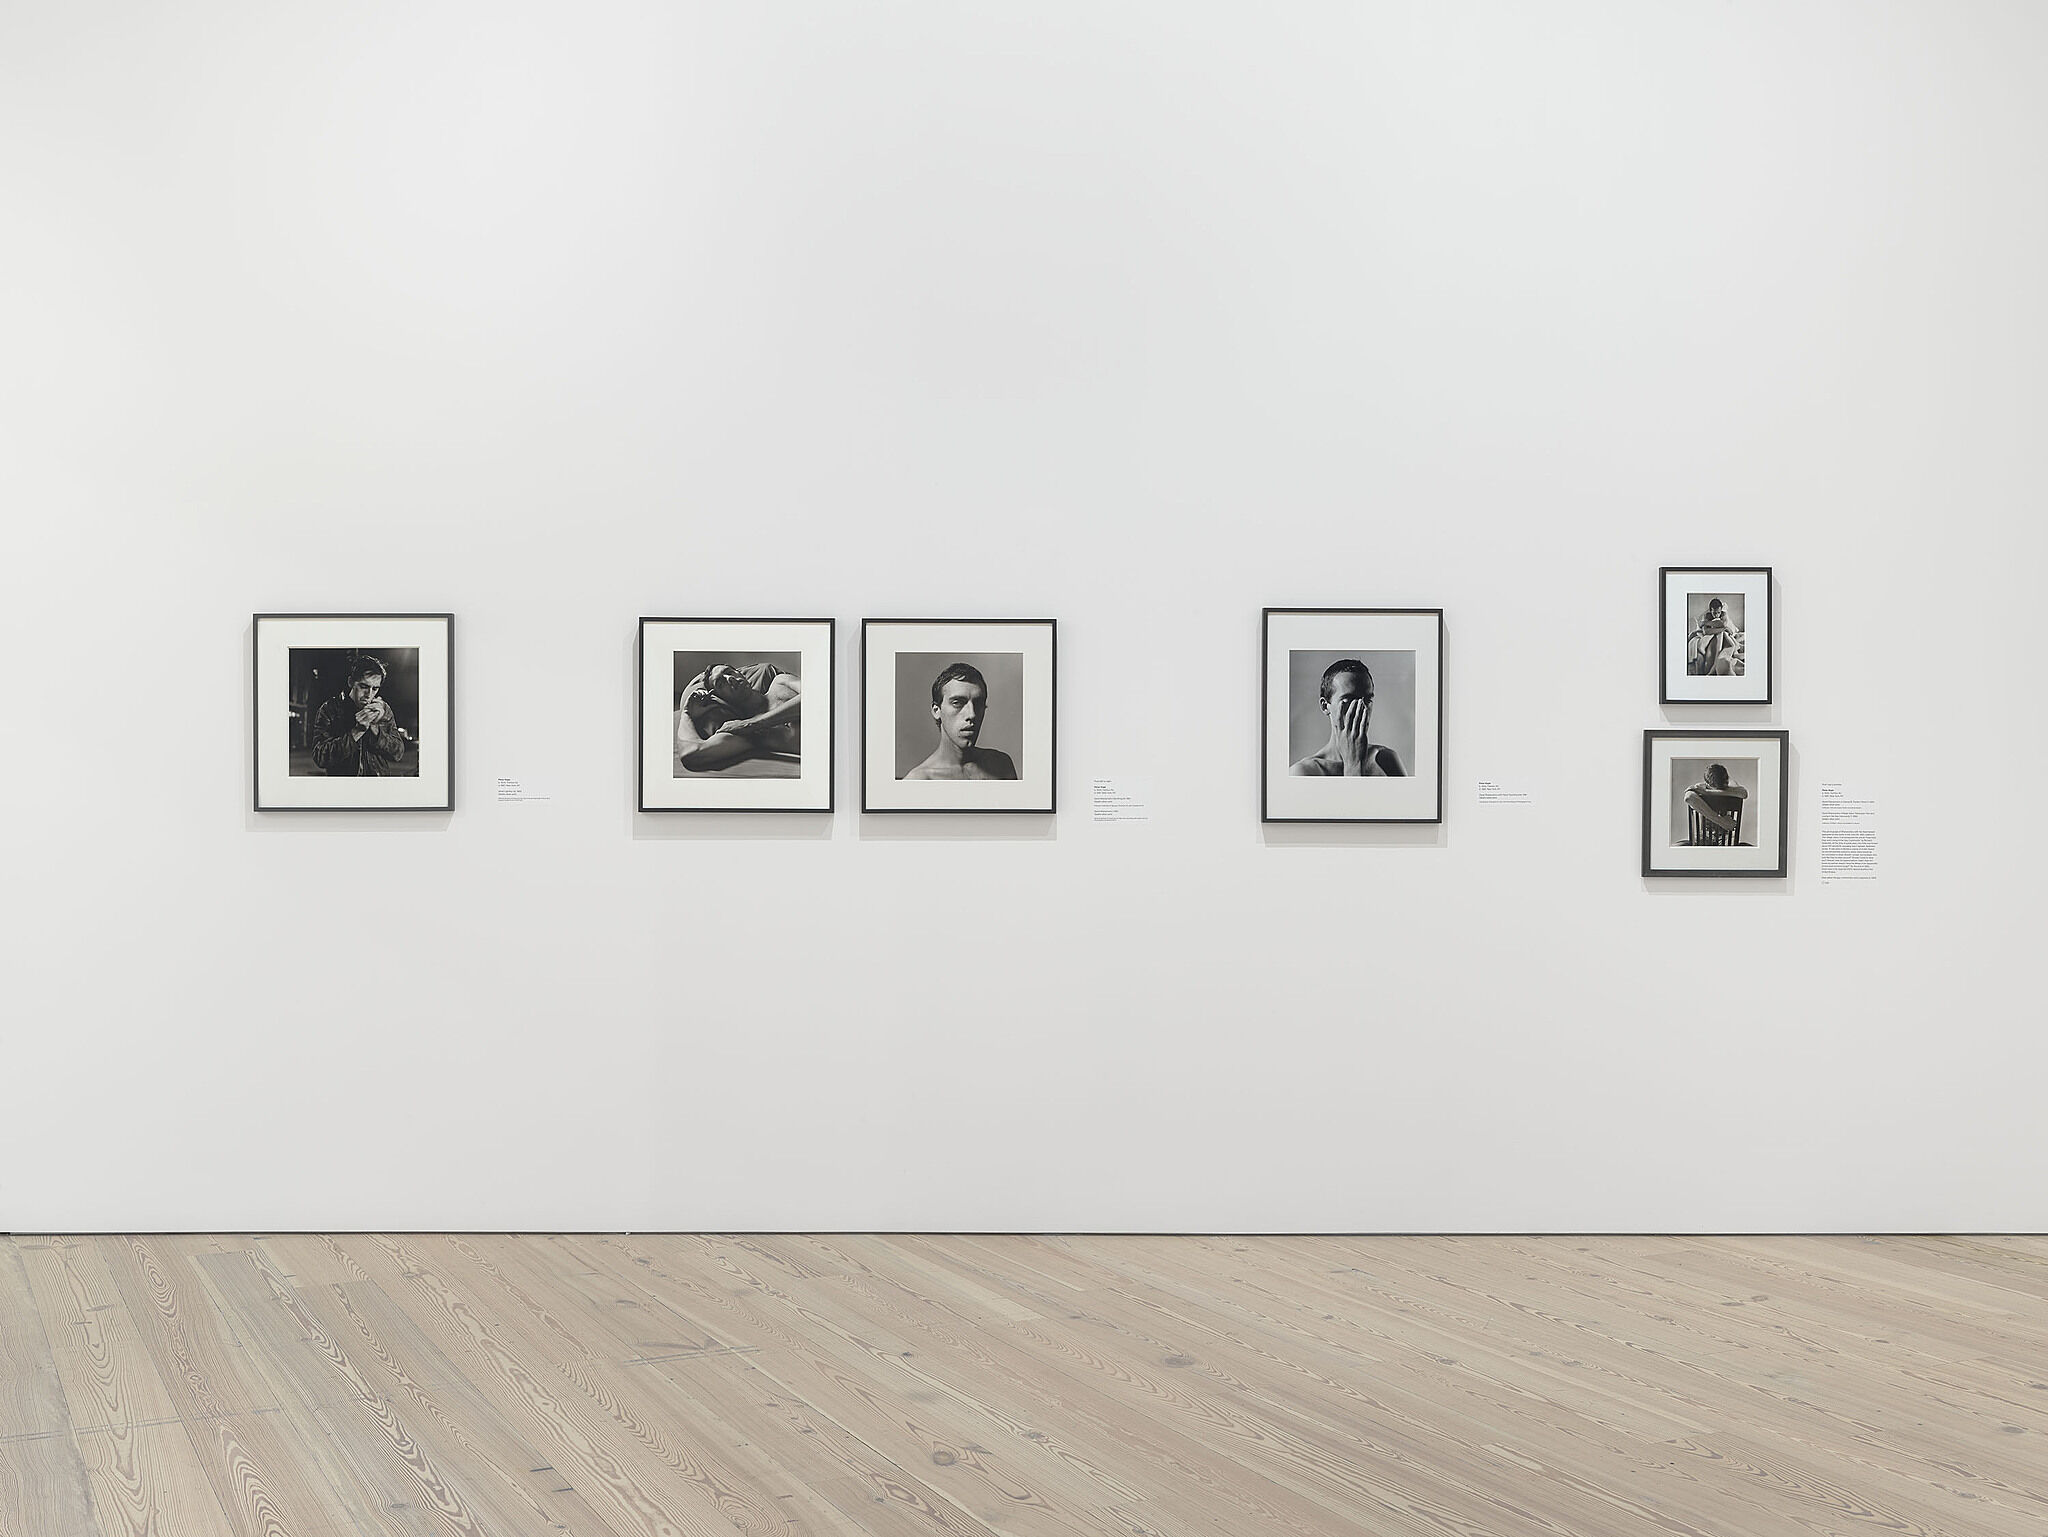 An image of the Whitney galleries with various photographs on the wall